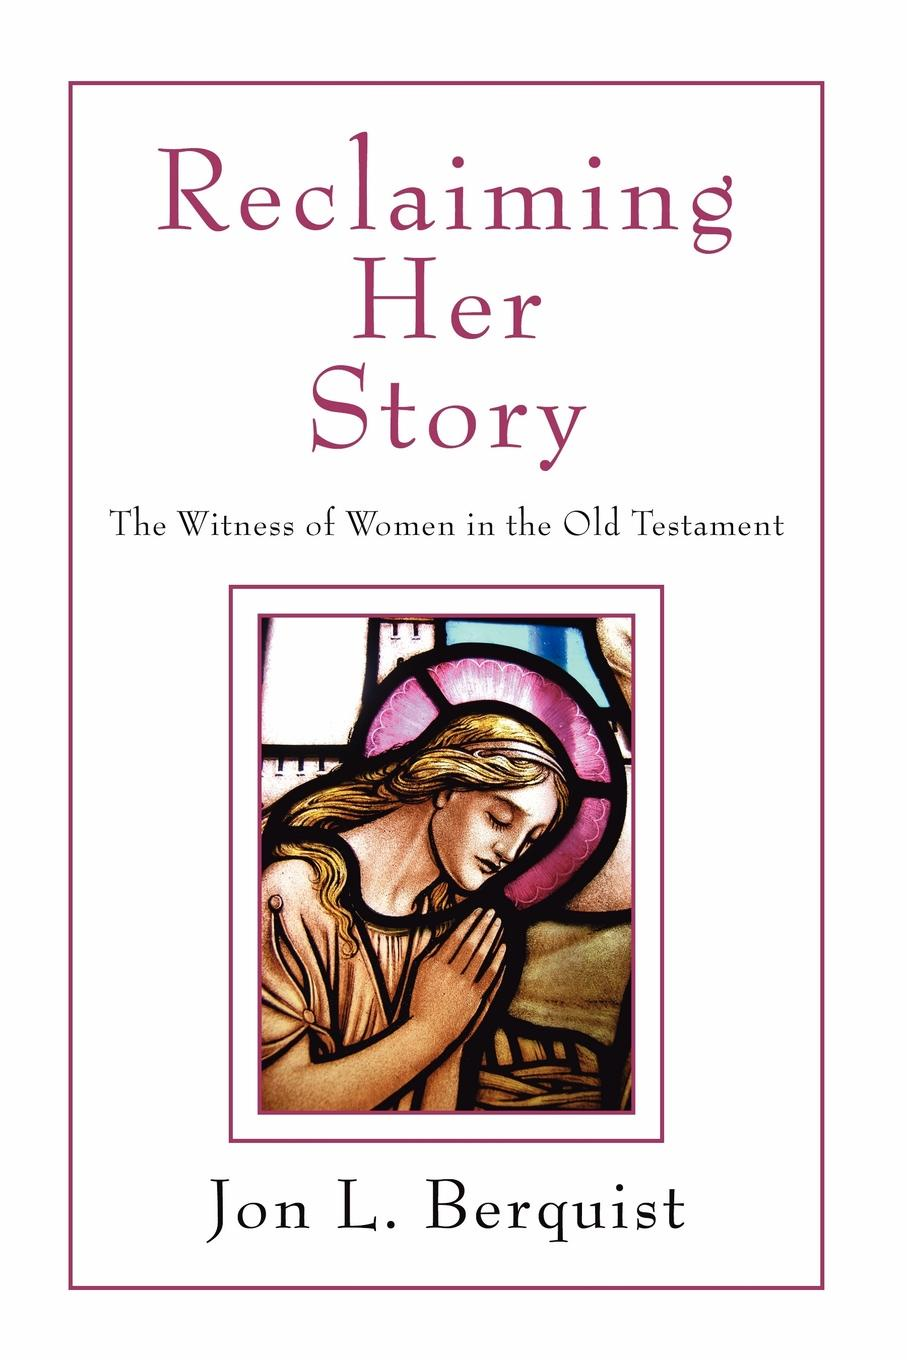 цена Jon L. Berquist Reclaiming Her Story. The Witness of Women in the Old Testament онлайн в 2017 году